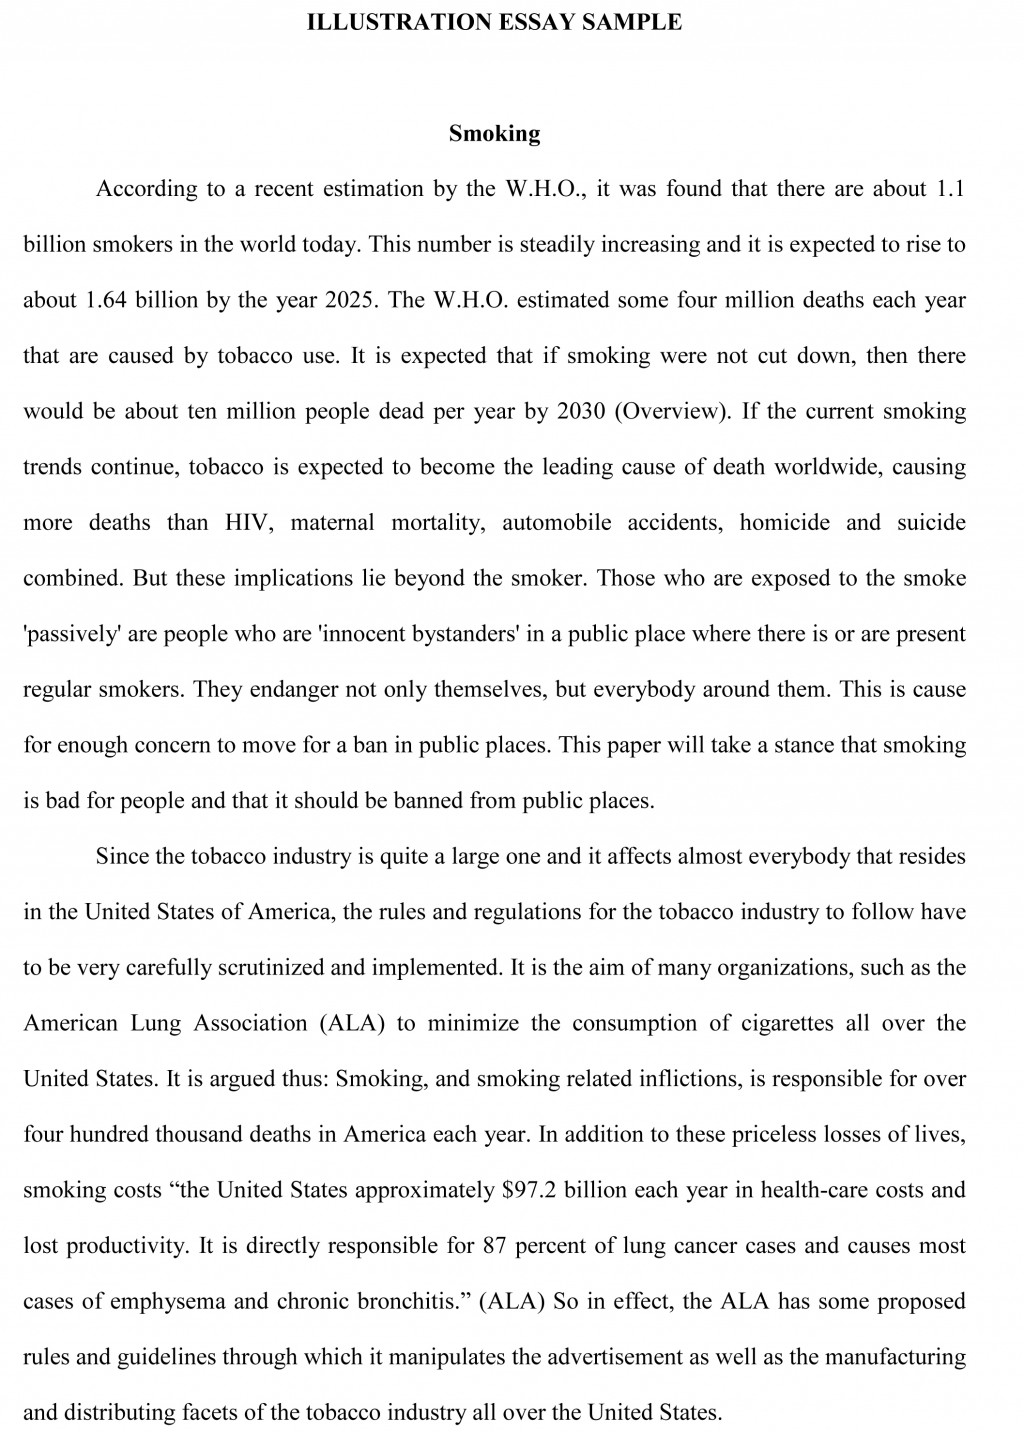 001 Illustration Essay Sample Writing Samples Unbelievable Examples Pdf For Grade 5 Large